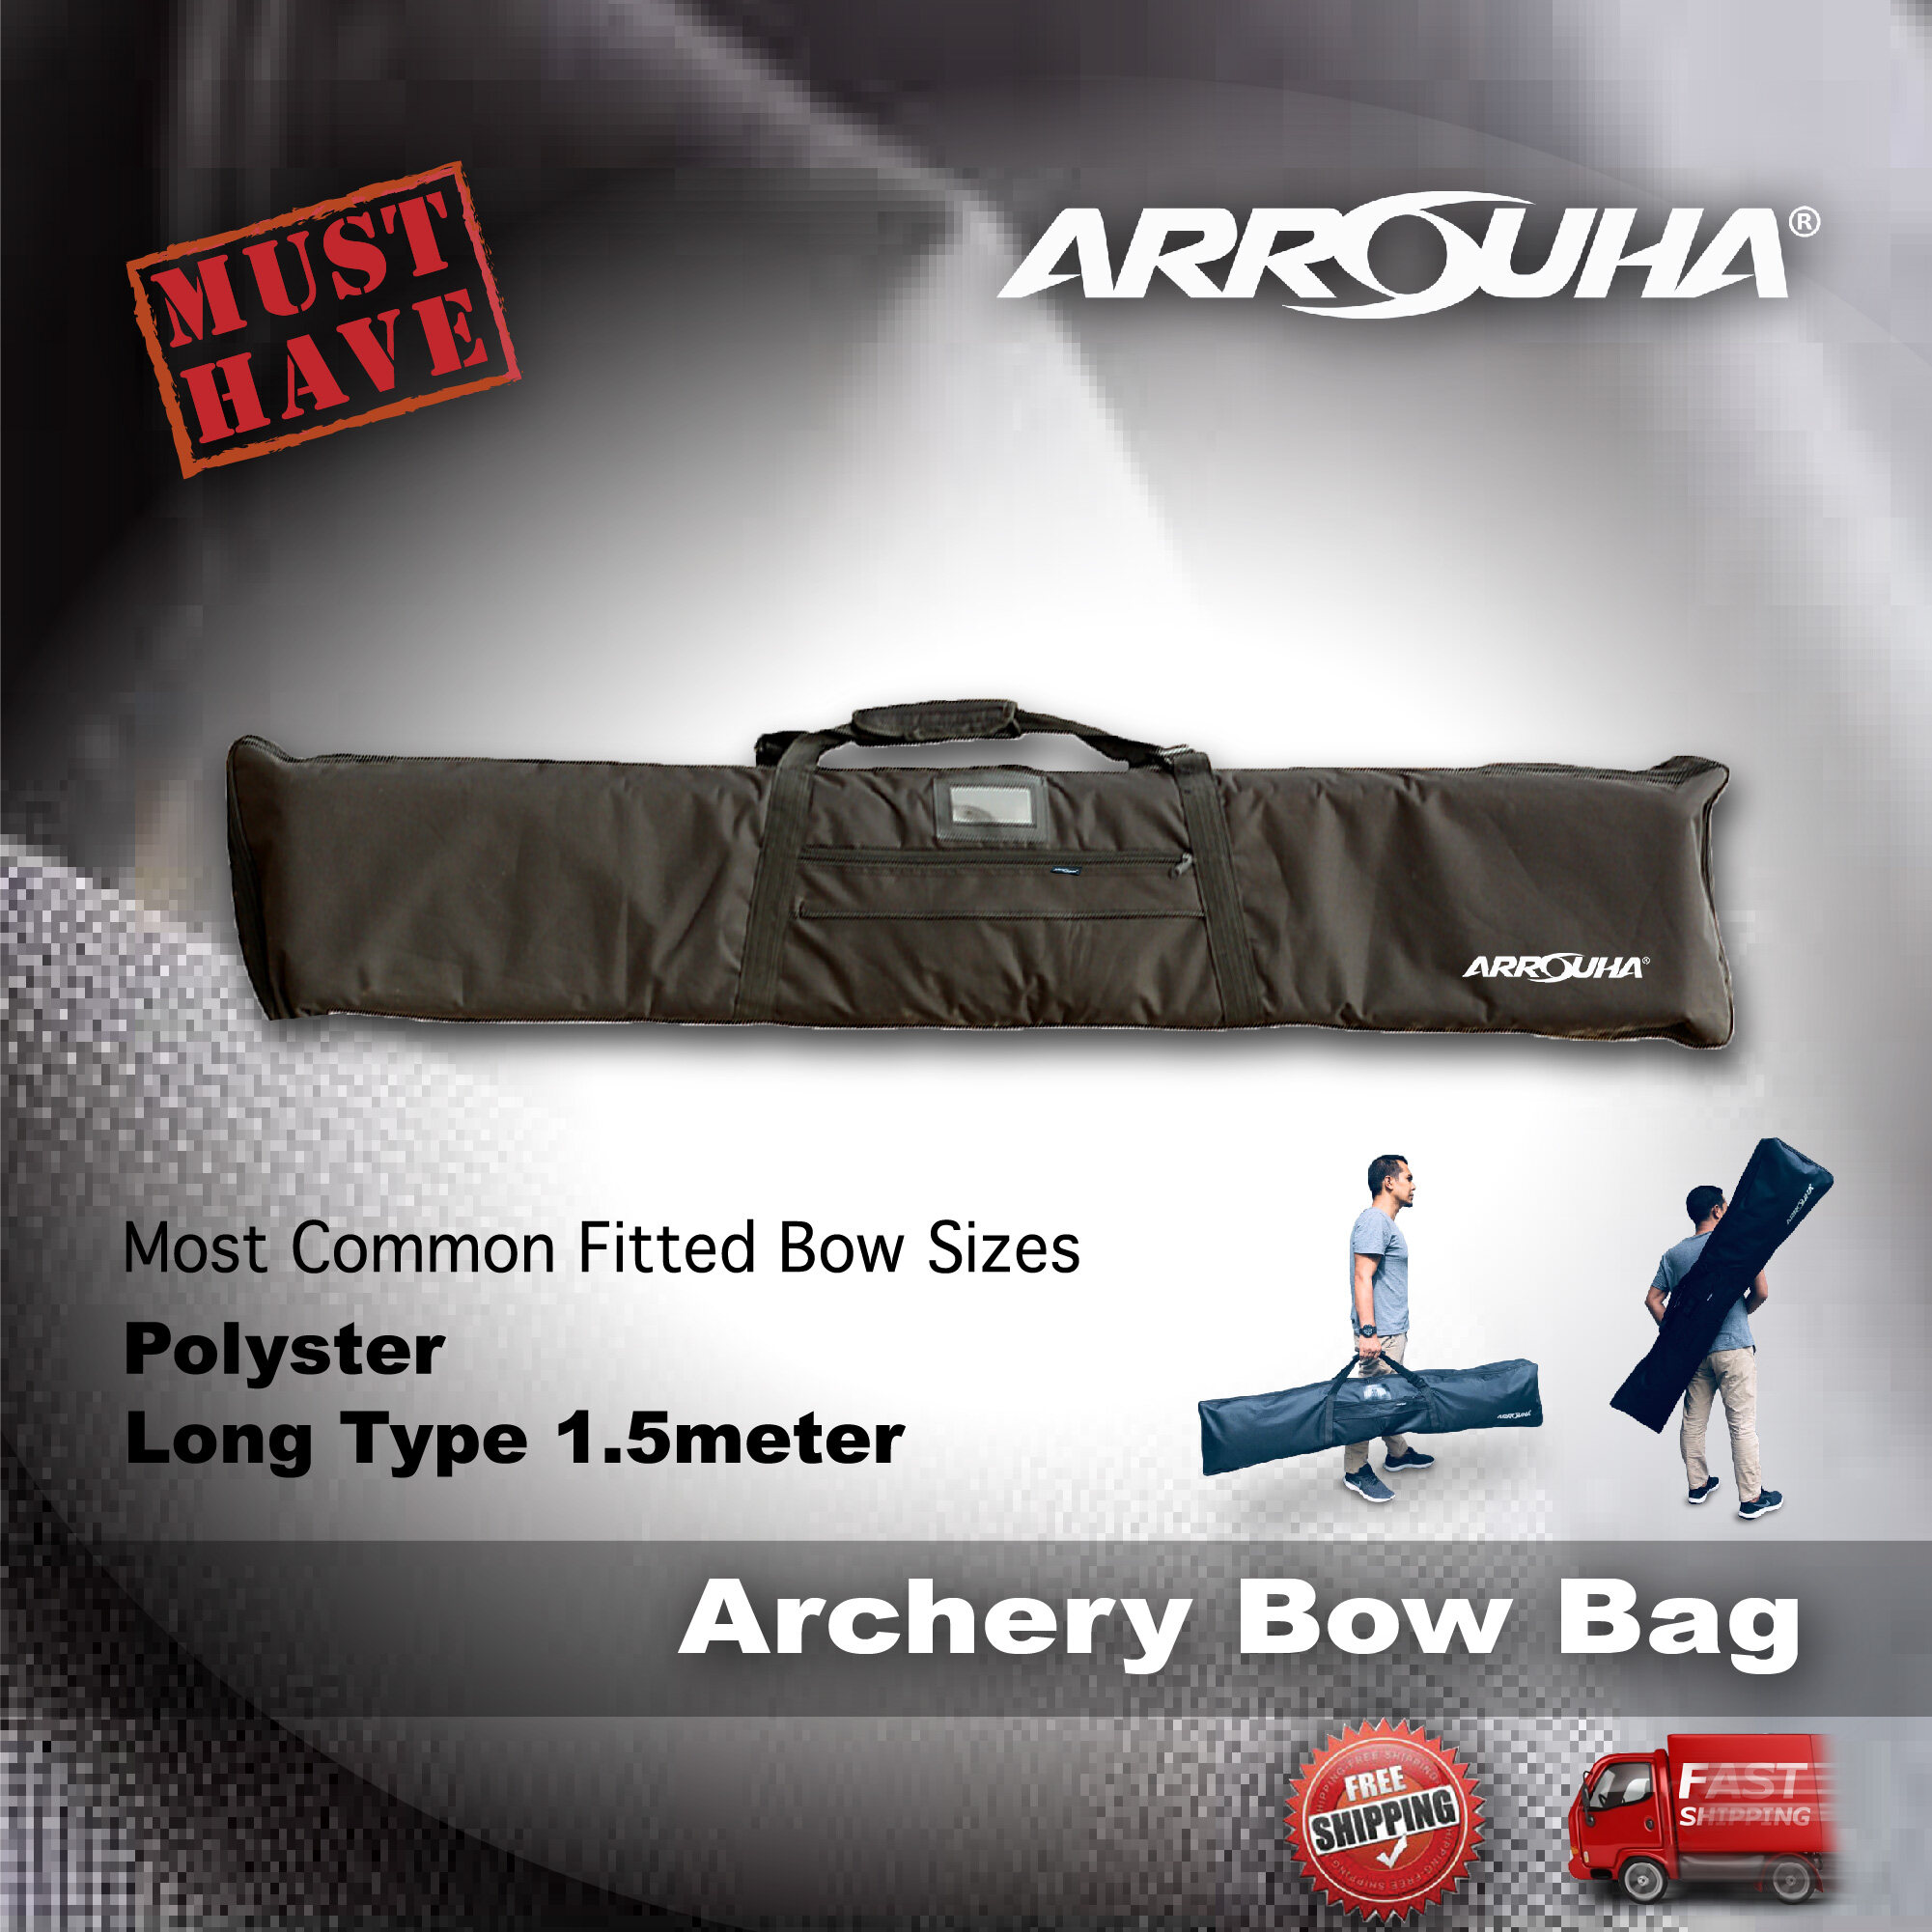 Archery Bow Bag Quality Polyster Long Type Most Common Fitted Bow Size Traditional or Recurve Long Bow by Arrouha